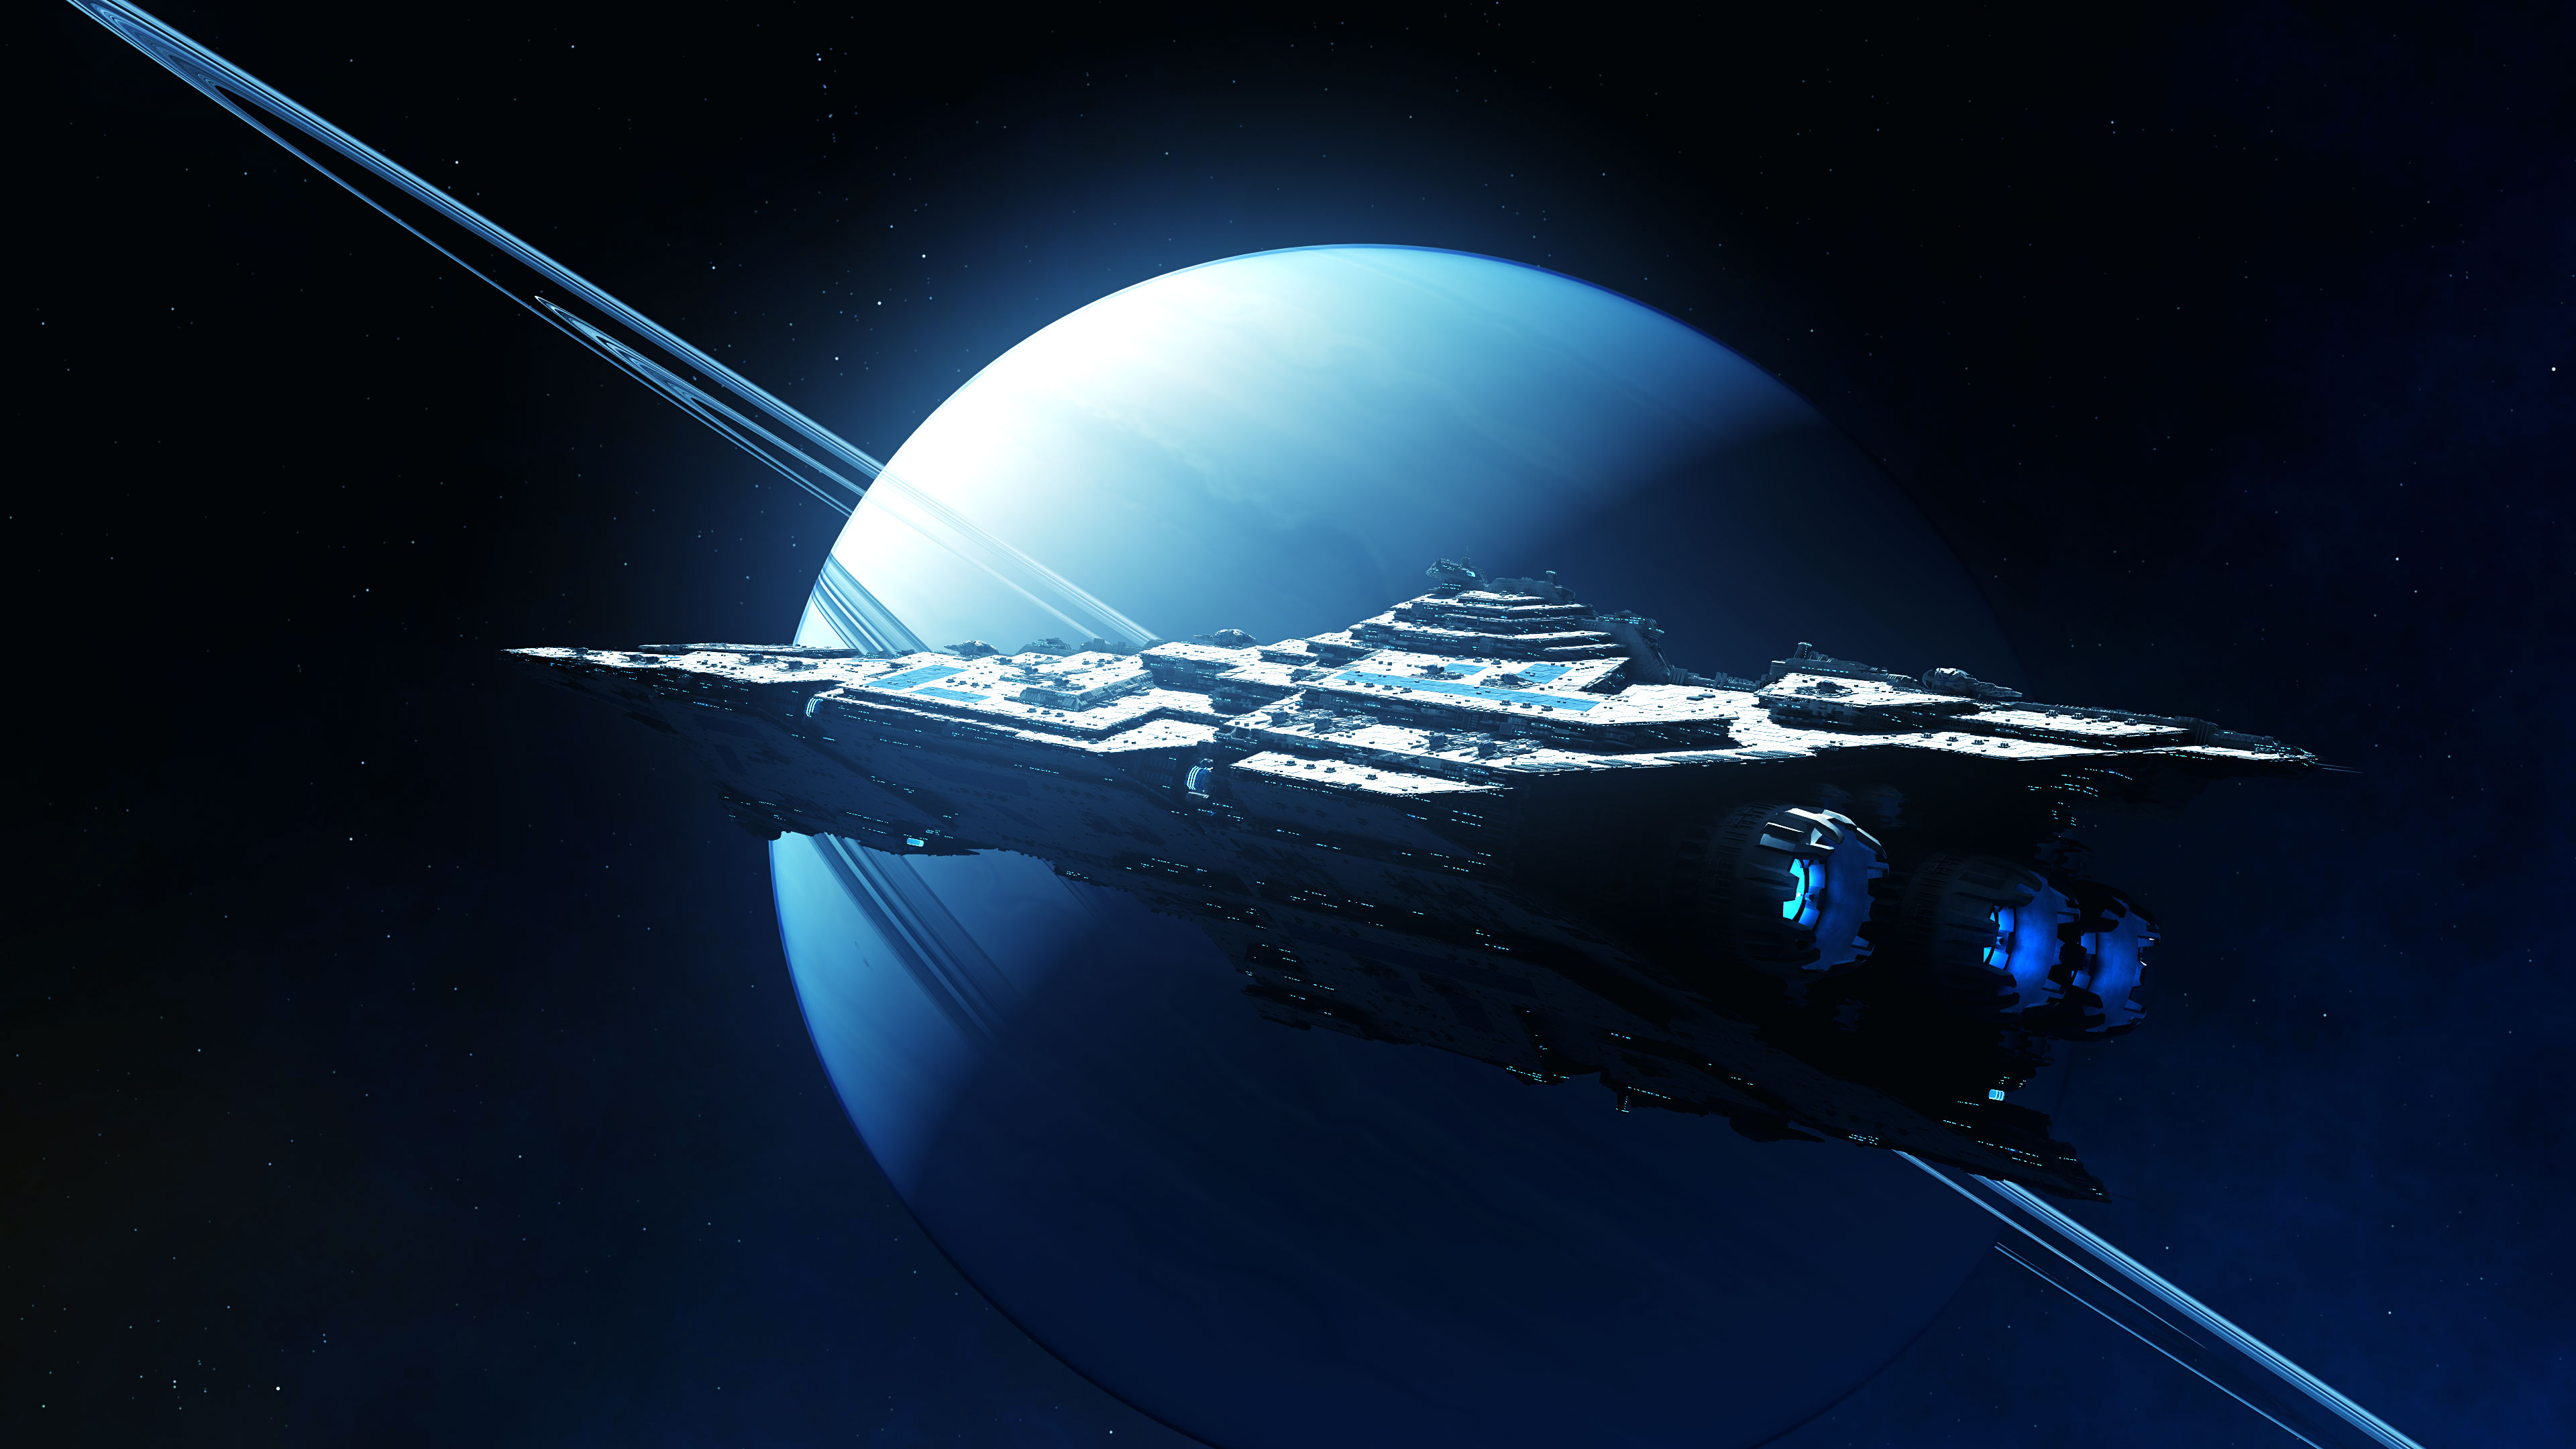 Spaceship 4k Ultra Hd Wallpaper Background Image 3840x2160 Id 903922 Wallpaper Abyss